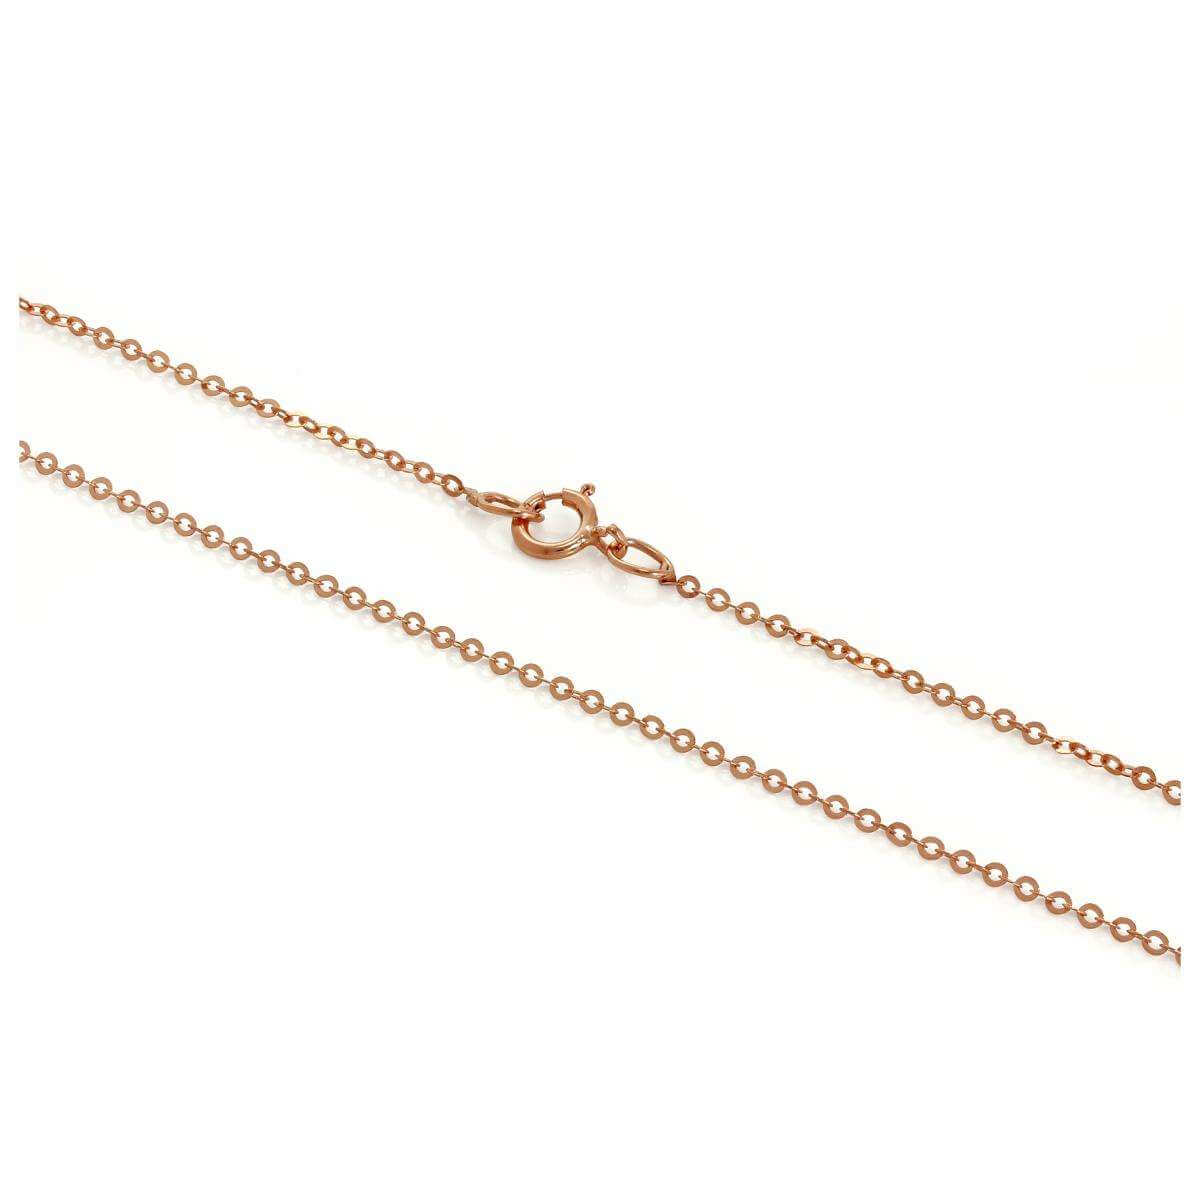 9ct Rose Gold Hammered Trace Chain 16 - 24 Inches